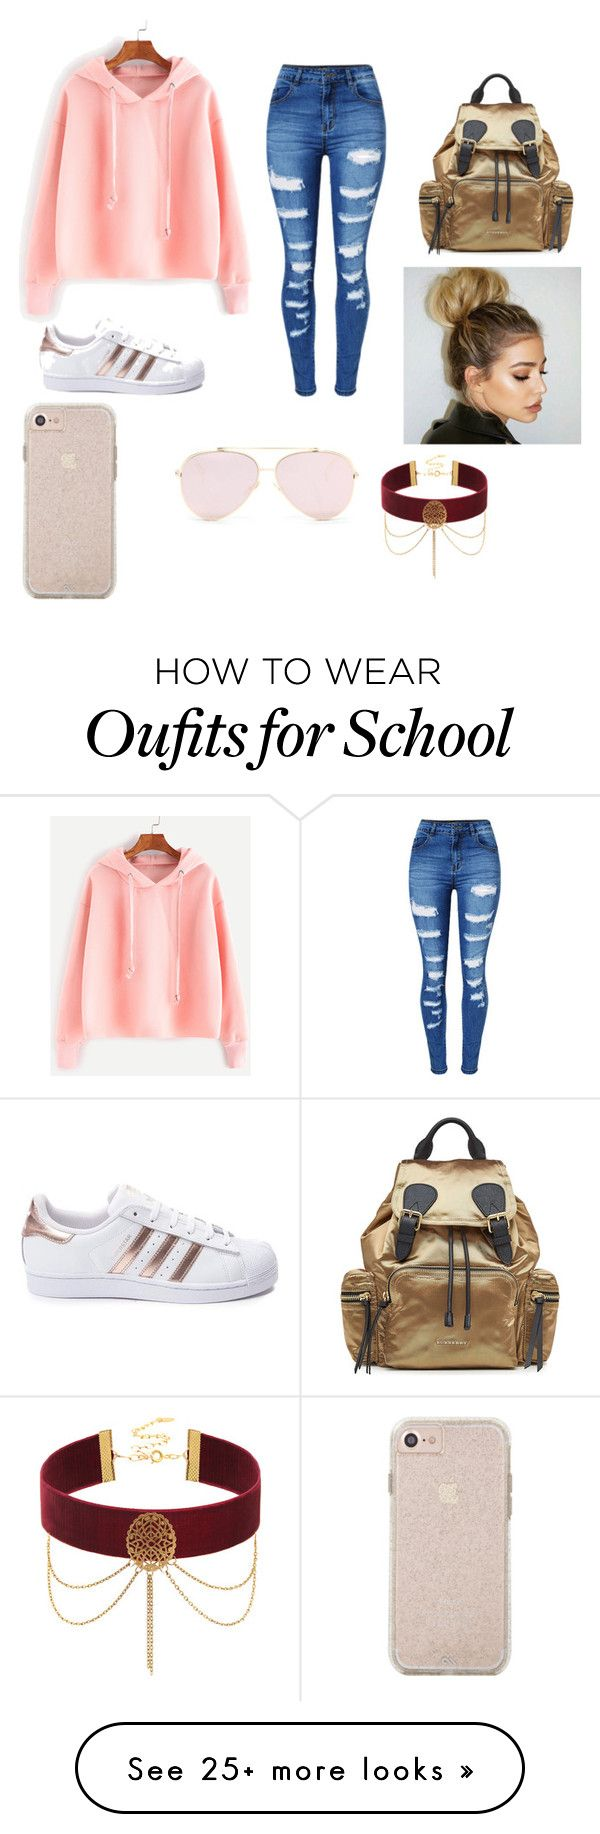 PRETTY PETTY SCHOOL GILR by lebraladee2383 on Polyvore featuring WithChic, adidas and Burberry